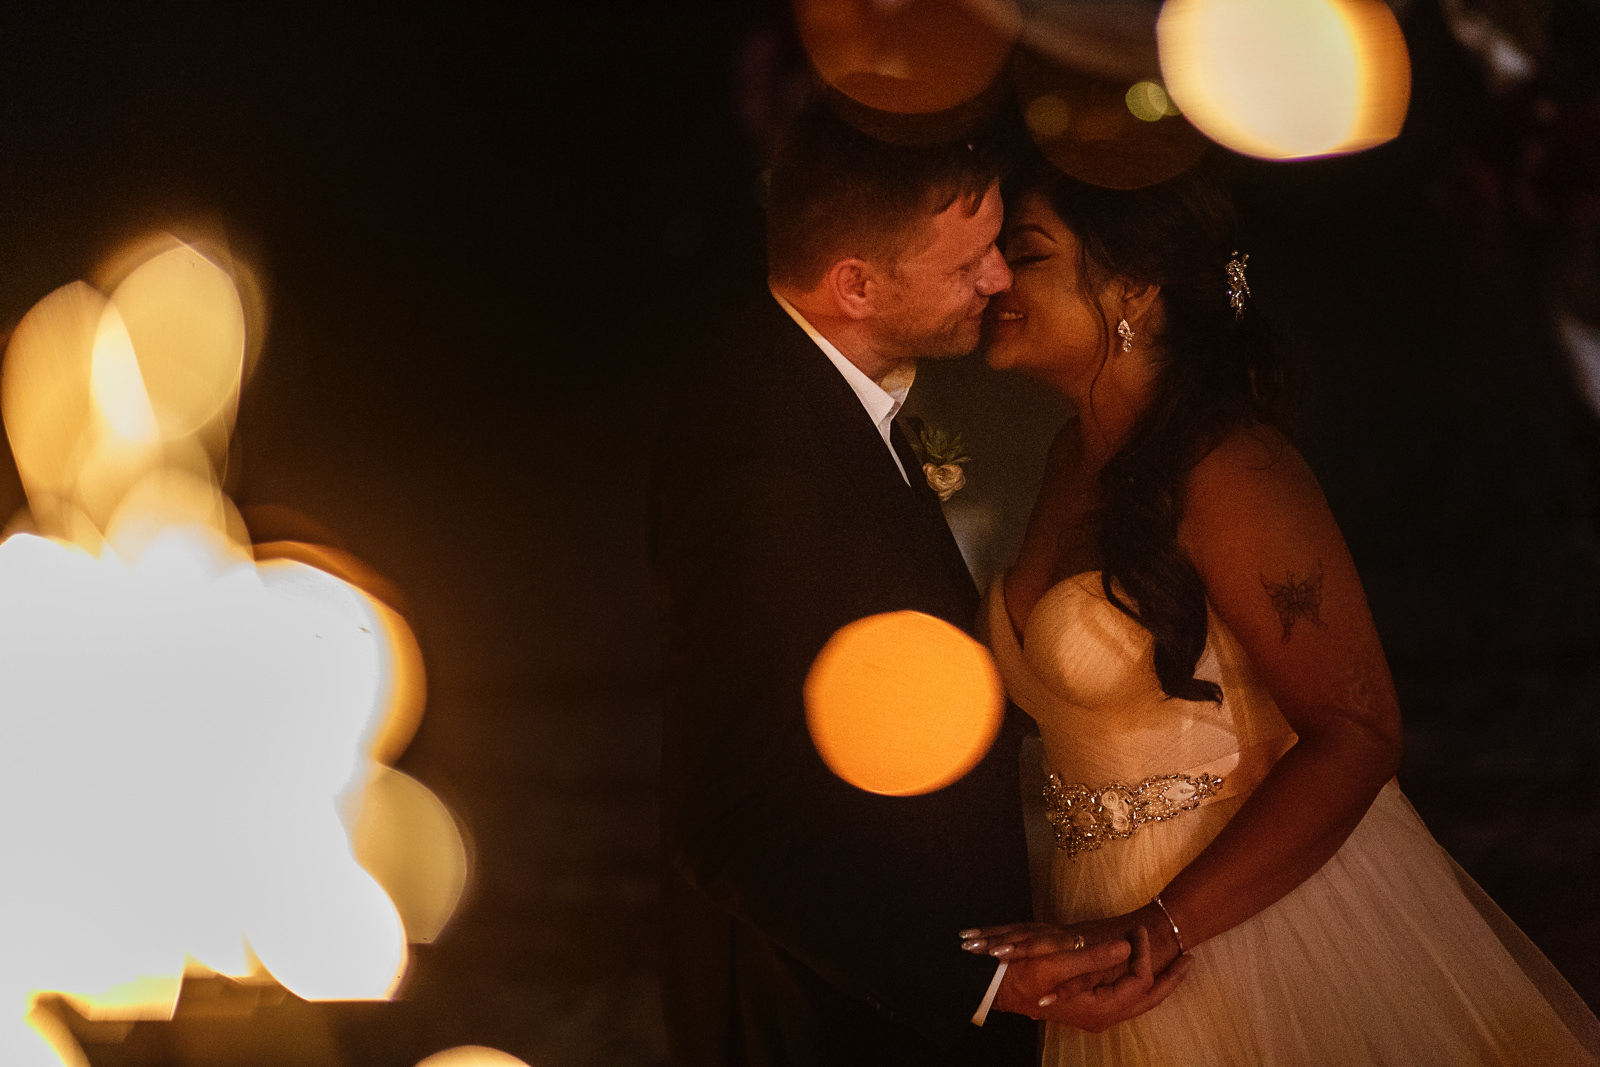 Groom and bride kiss through the sparkler's embers